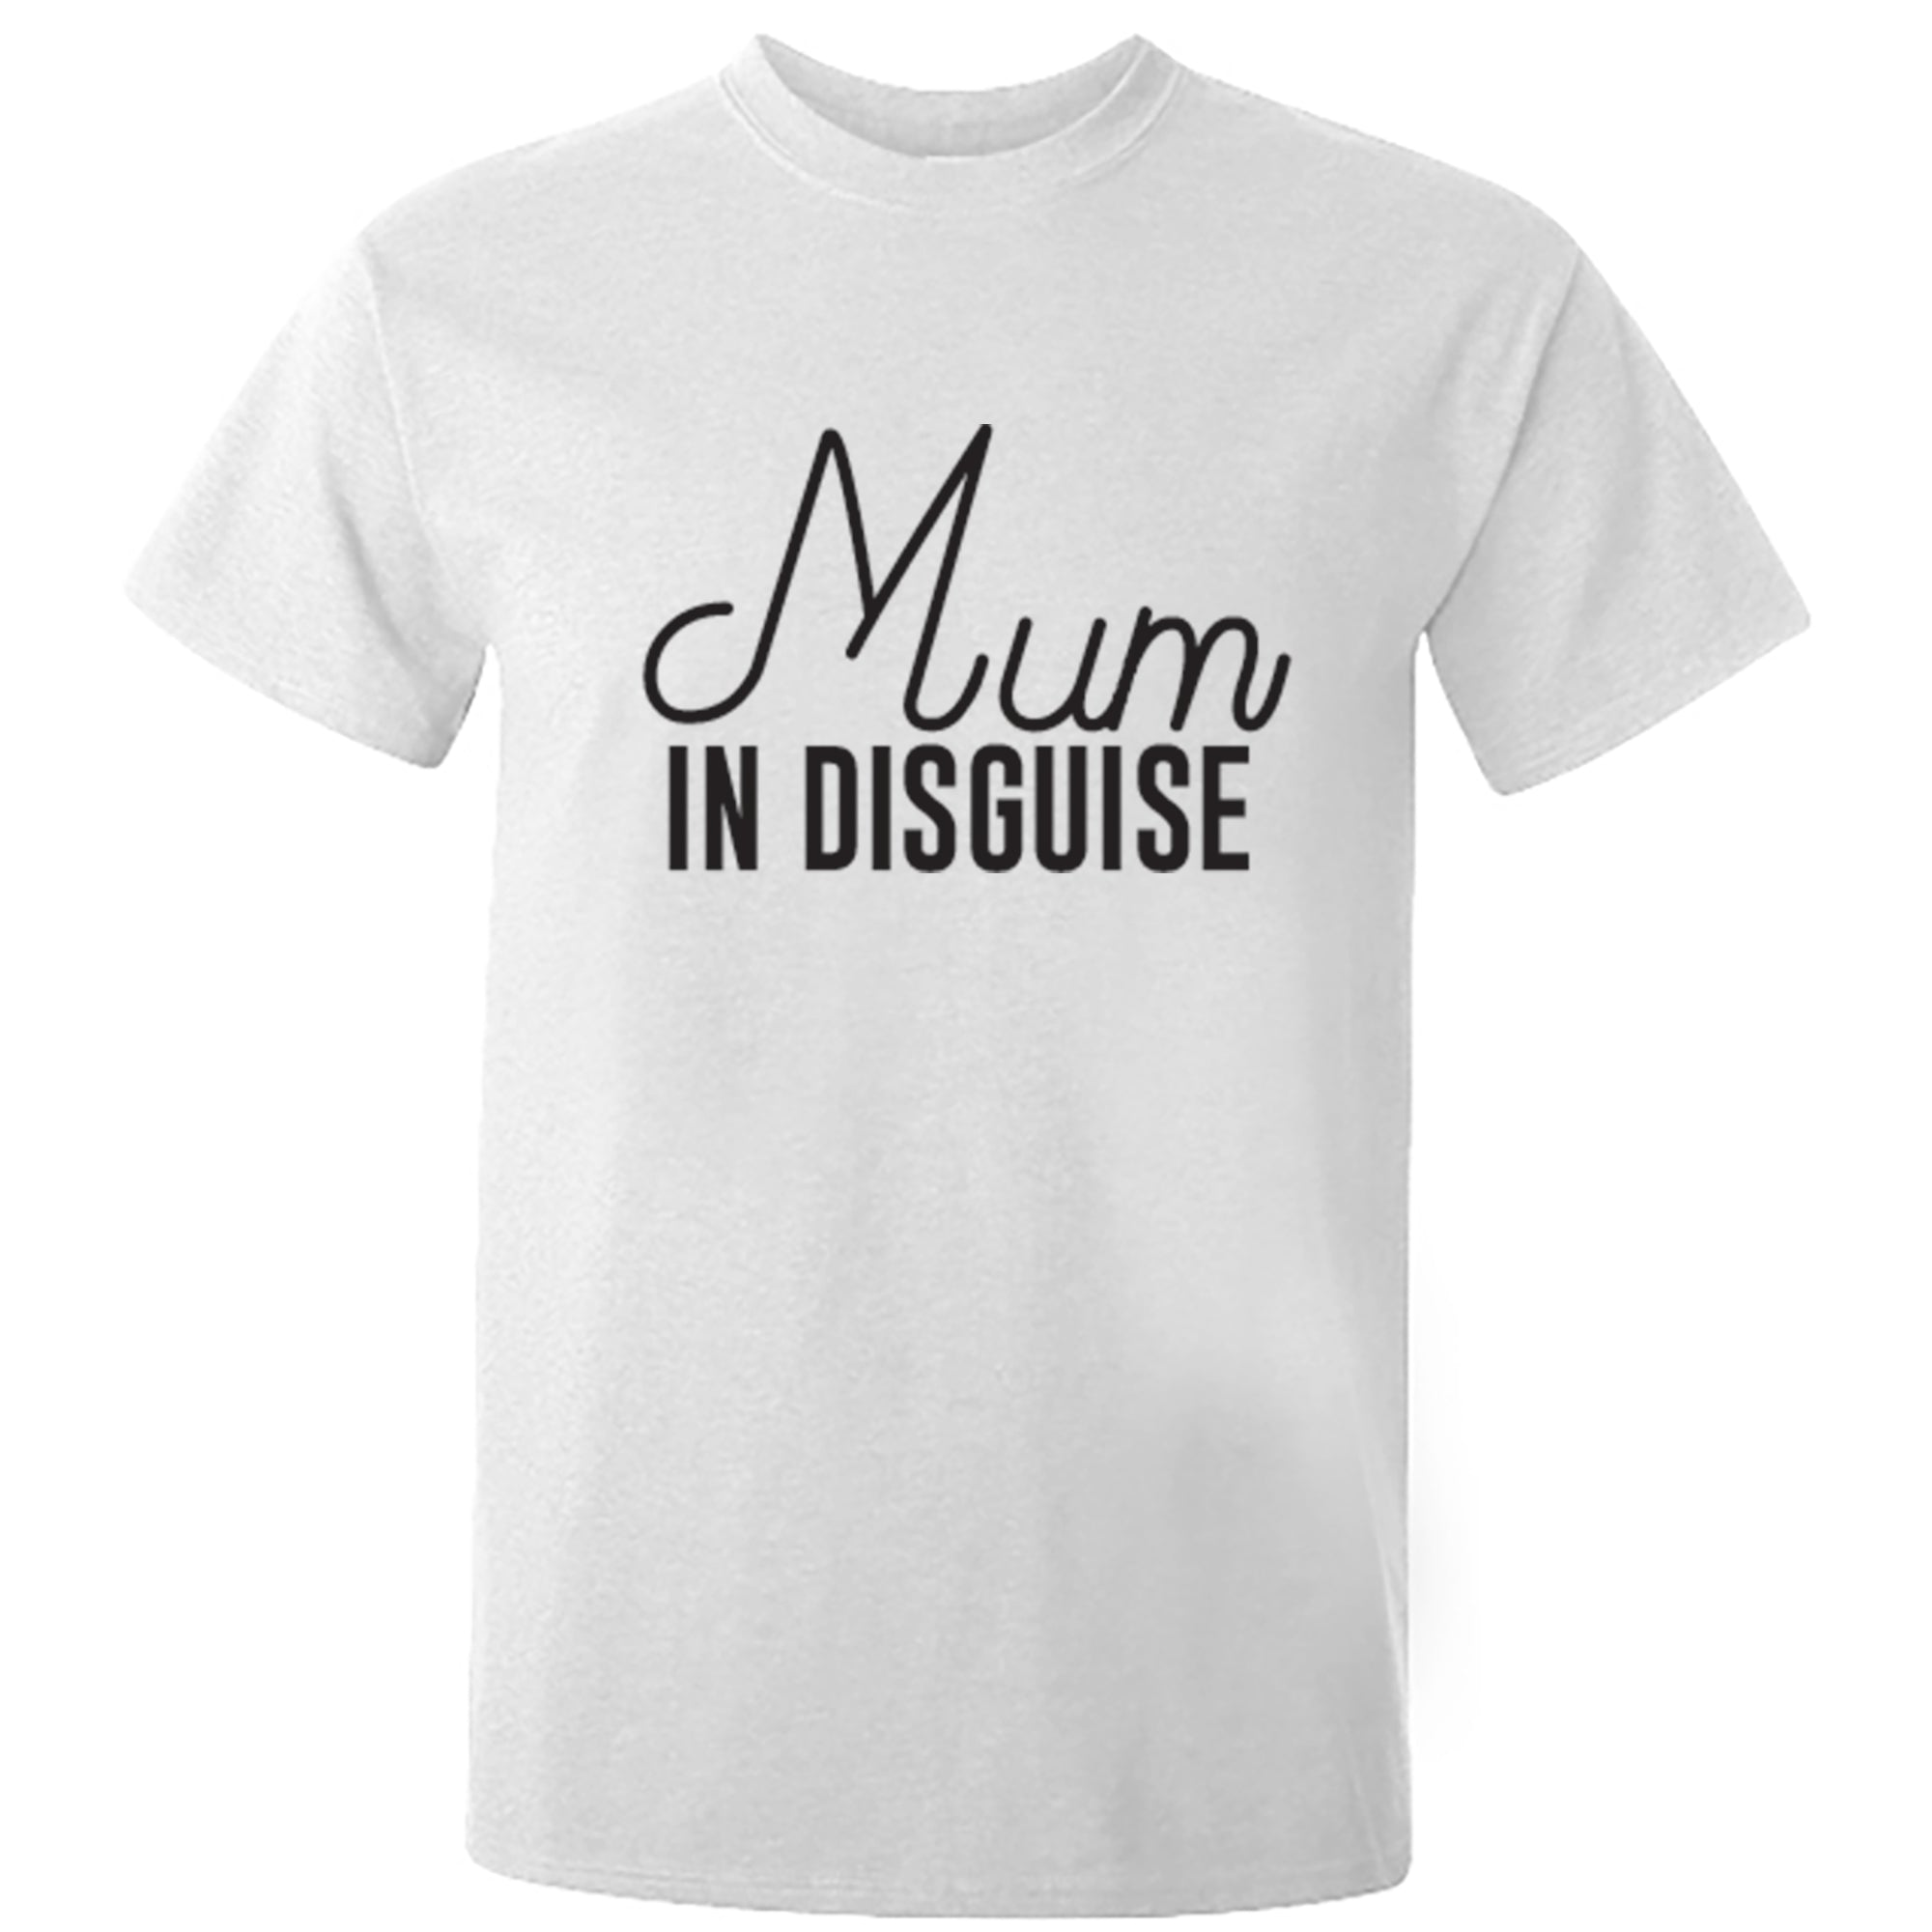 Mum In Disguise Unisex Fit T-Shirt S0080 - Illustrated Identity Ltd.